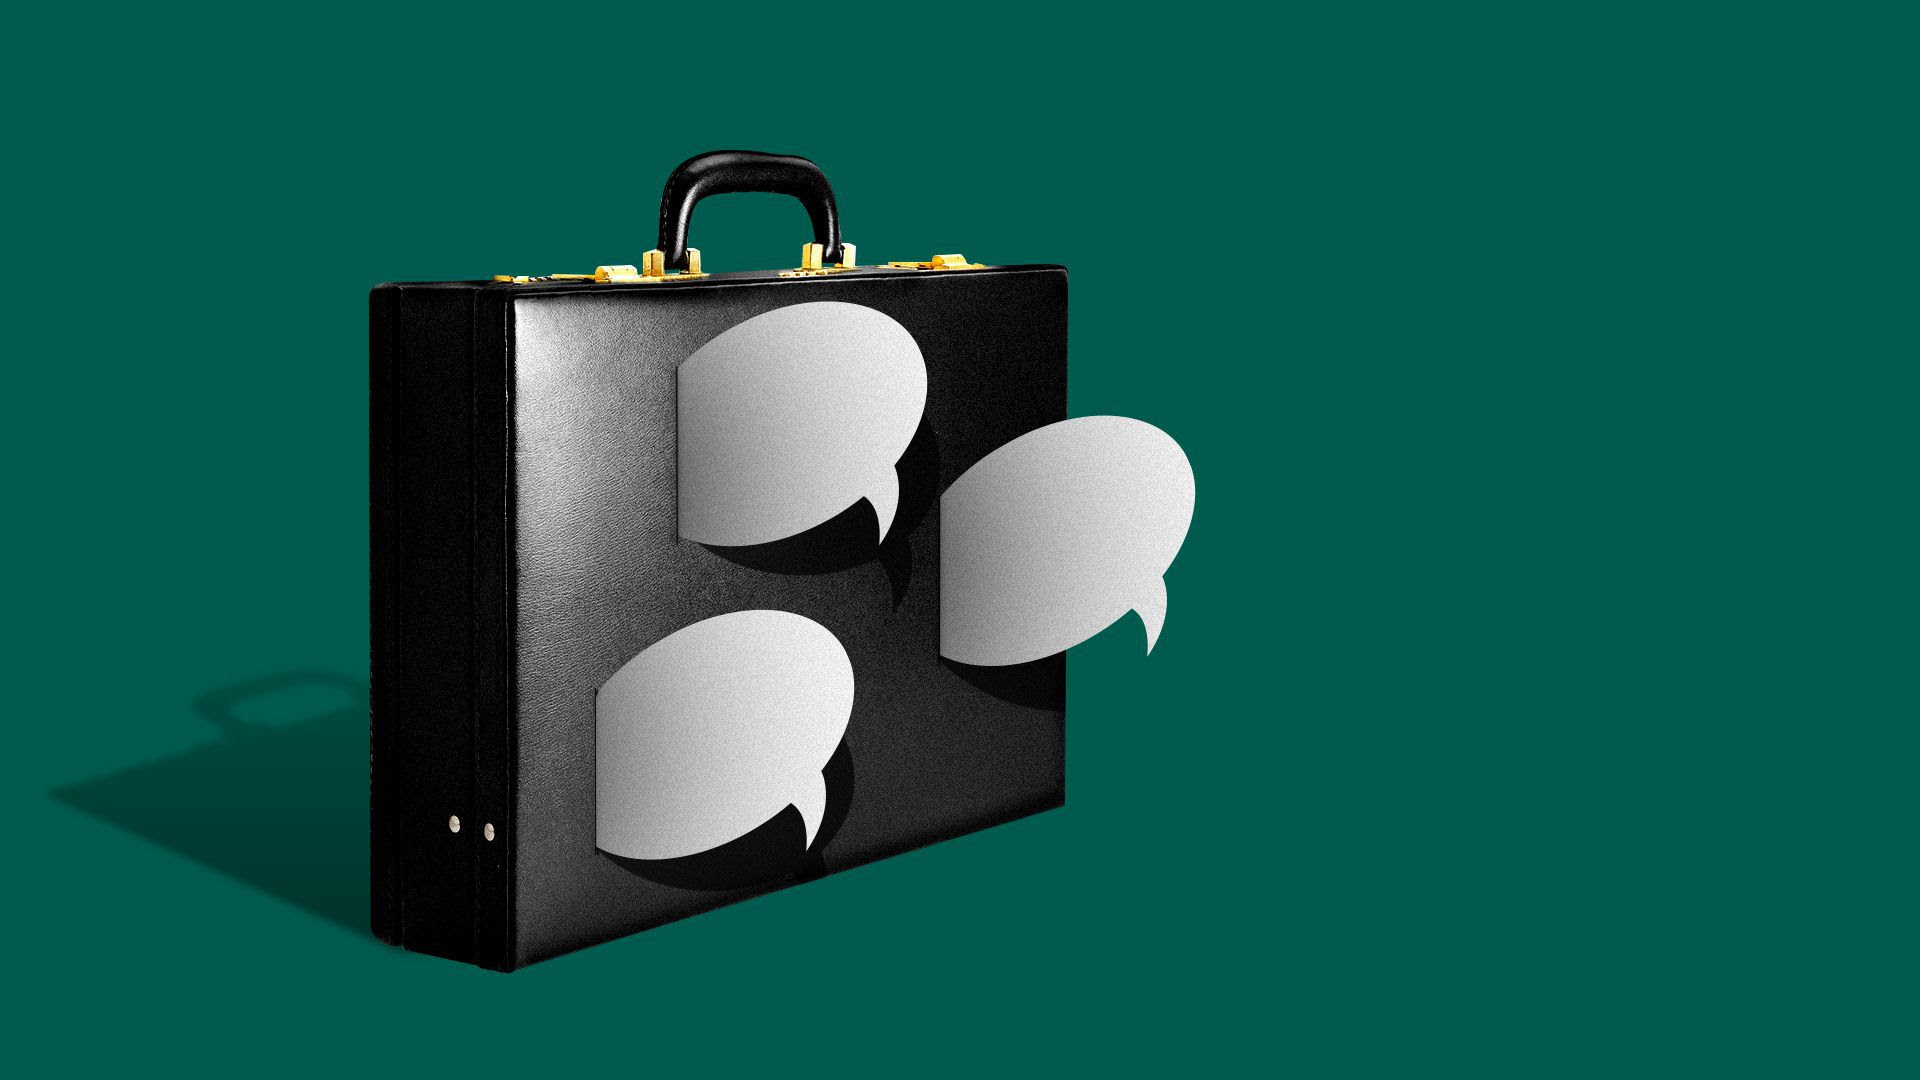 Illustration of a briefcase being pierced by several speech bubbles.